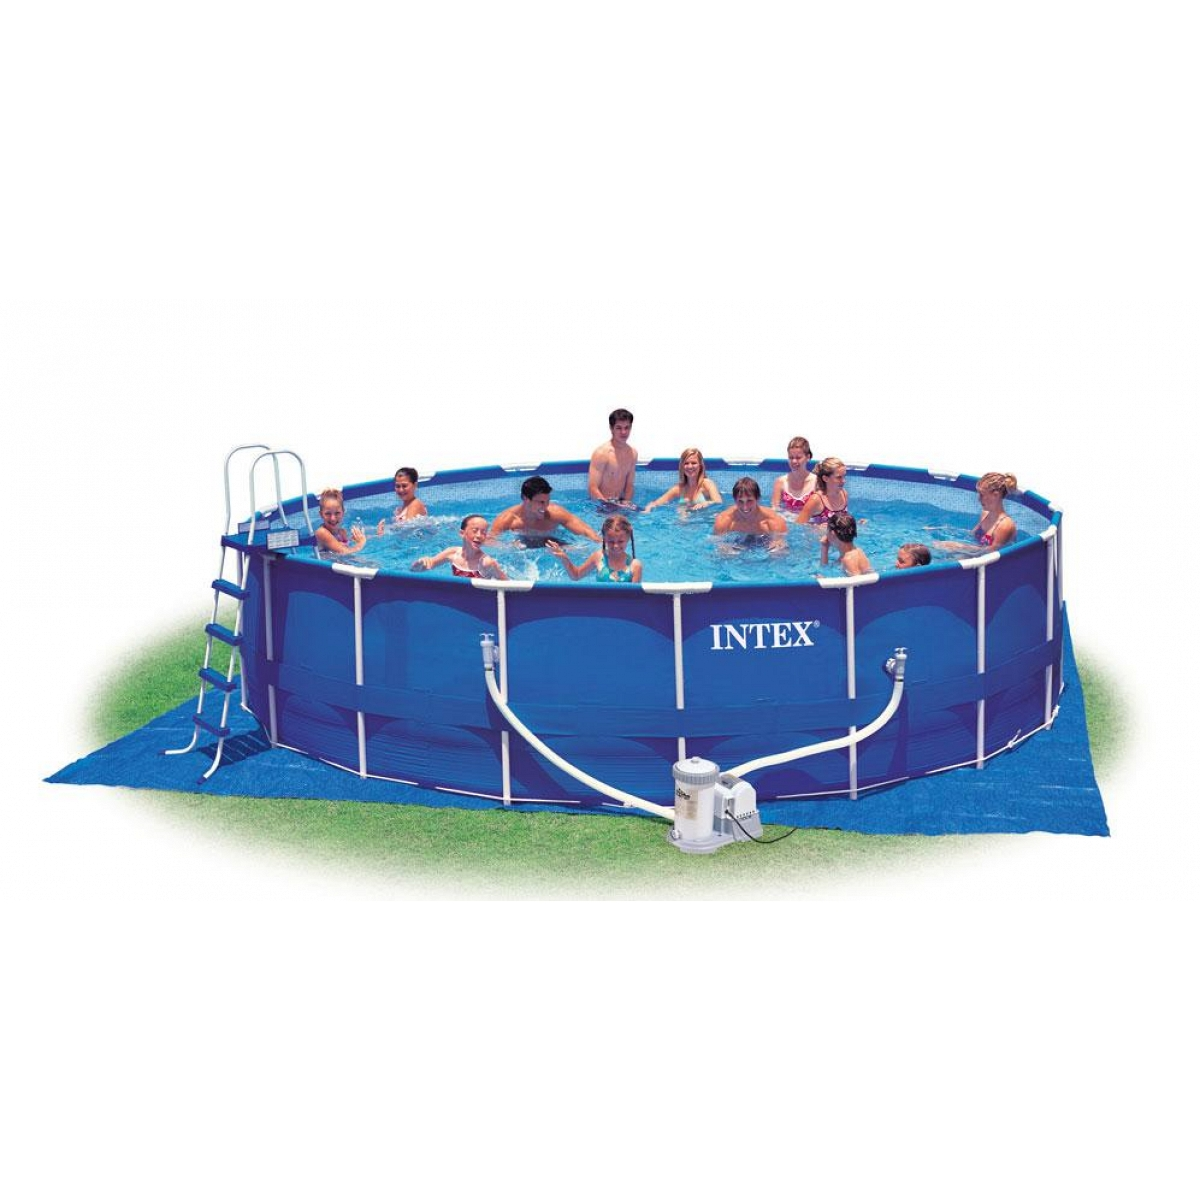 Piscina tonda intex fuoriterra 549x122 mod metal frame con for Prezzi piscine intex